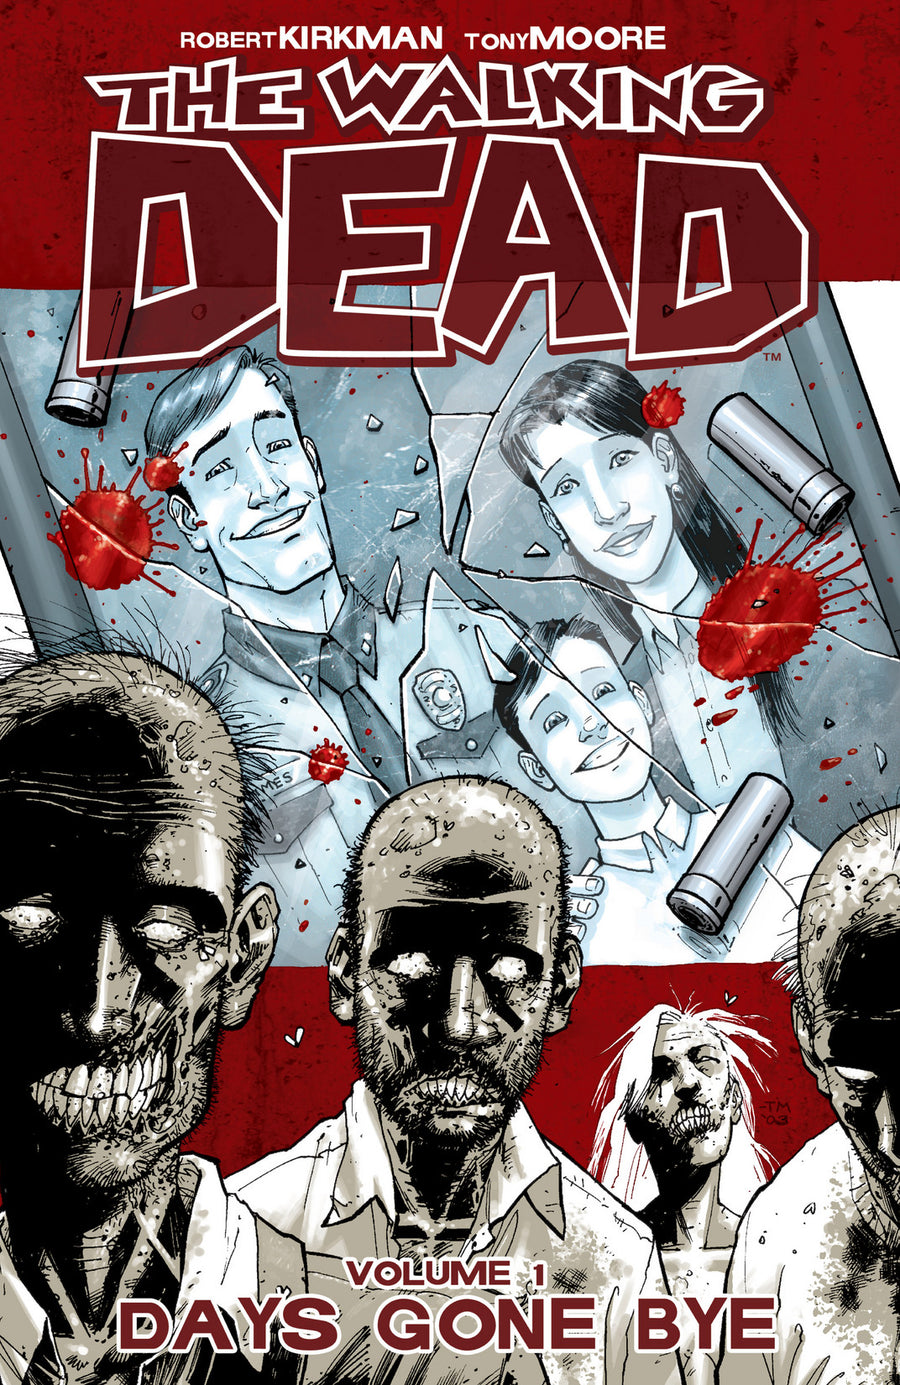 THE WALKING DEAD VOL 1 DAYS GONE BY